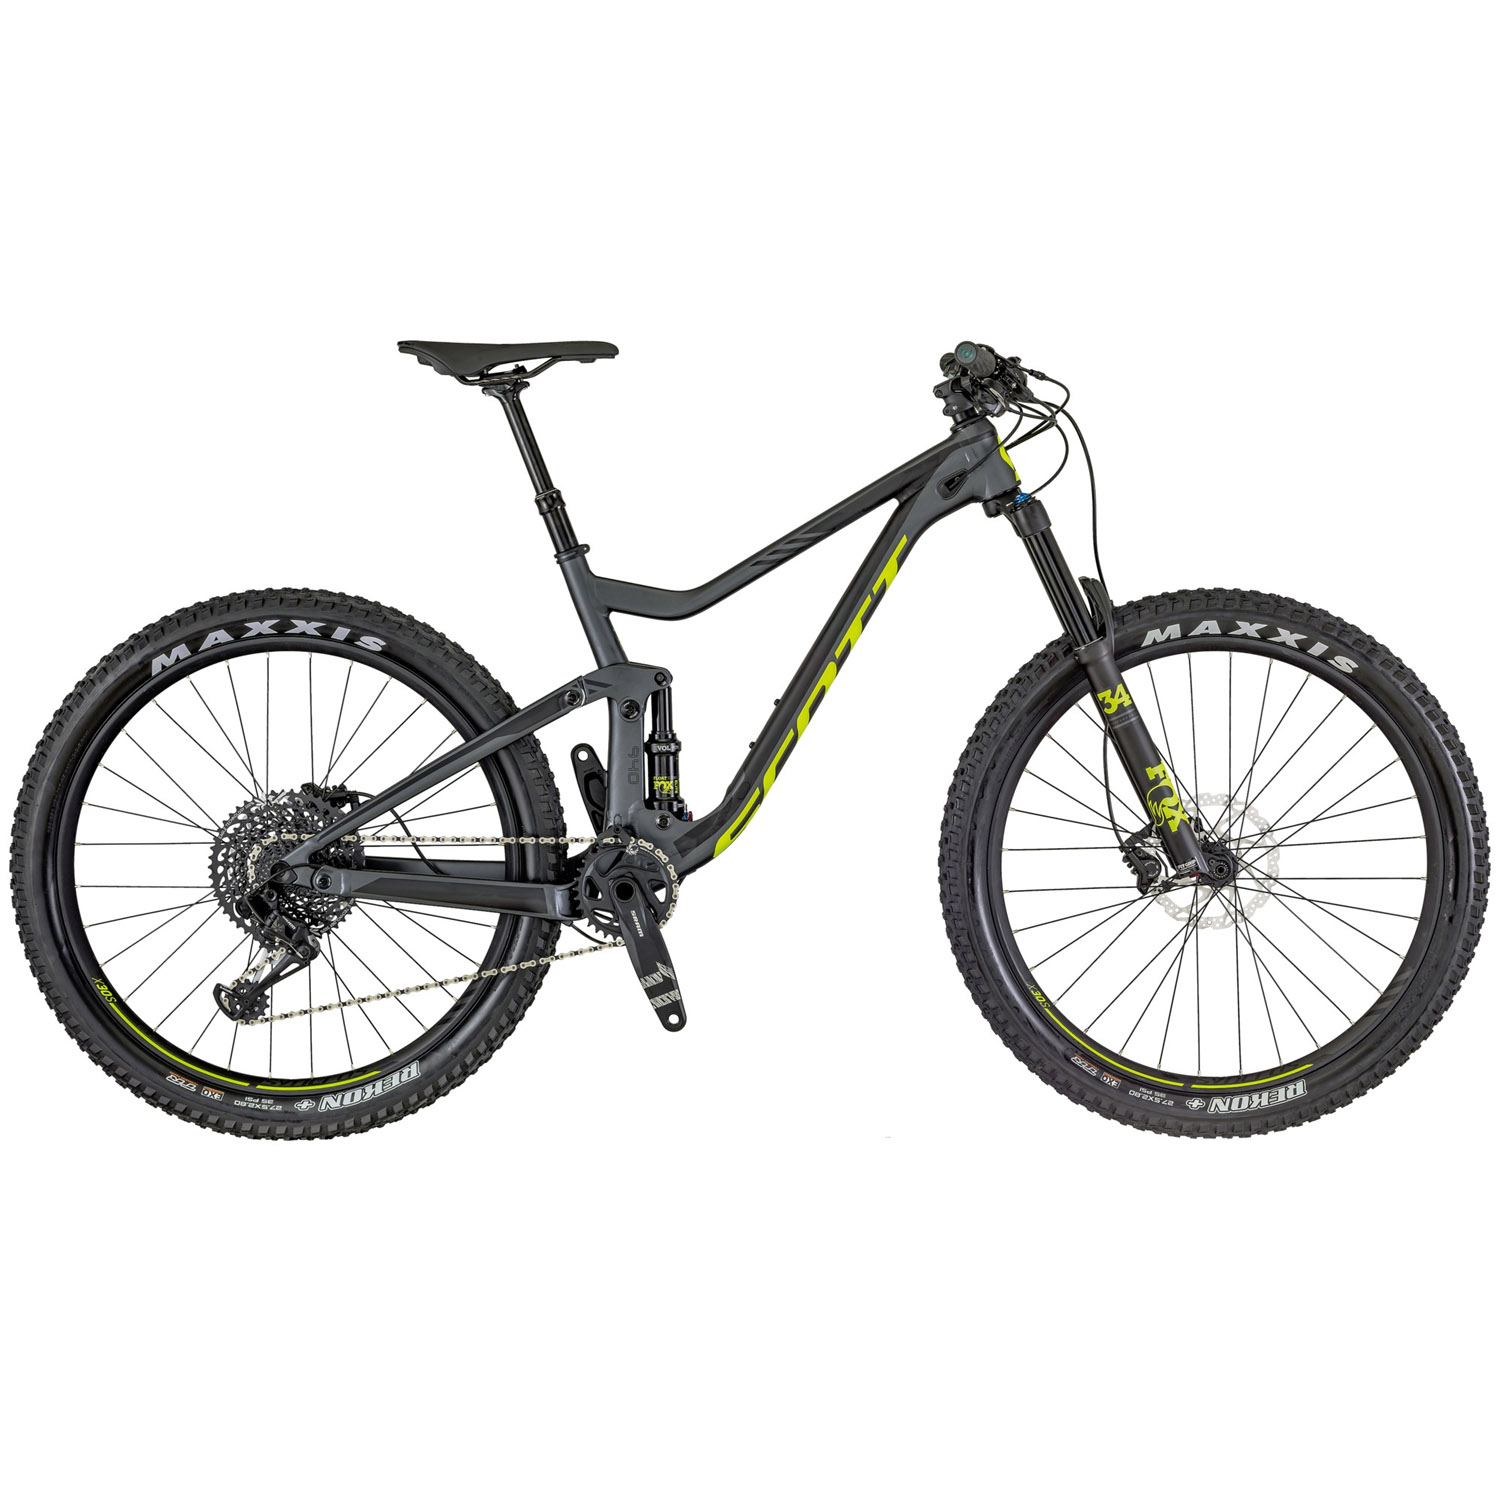 scott genius 740 fully mountainbike 27 5 zoll 44 cm m. Black Bedroom Furniture Sets. Home Design Ideas